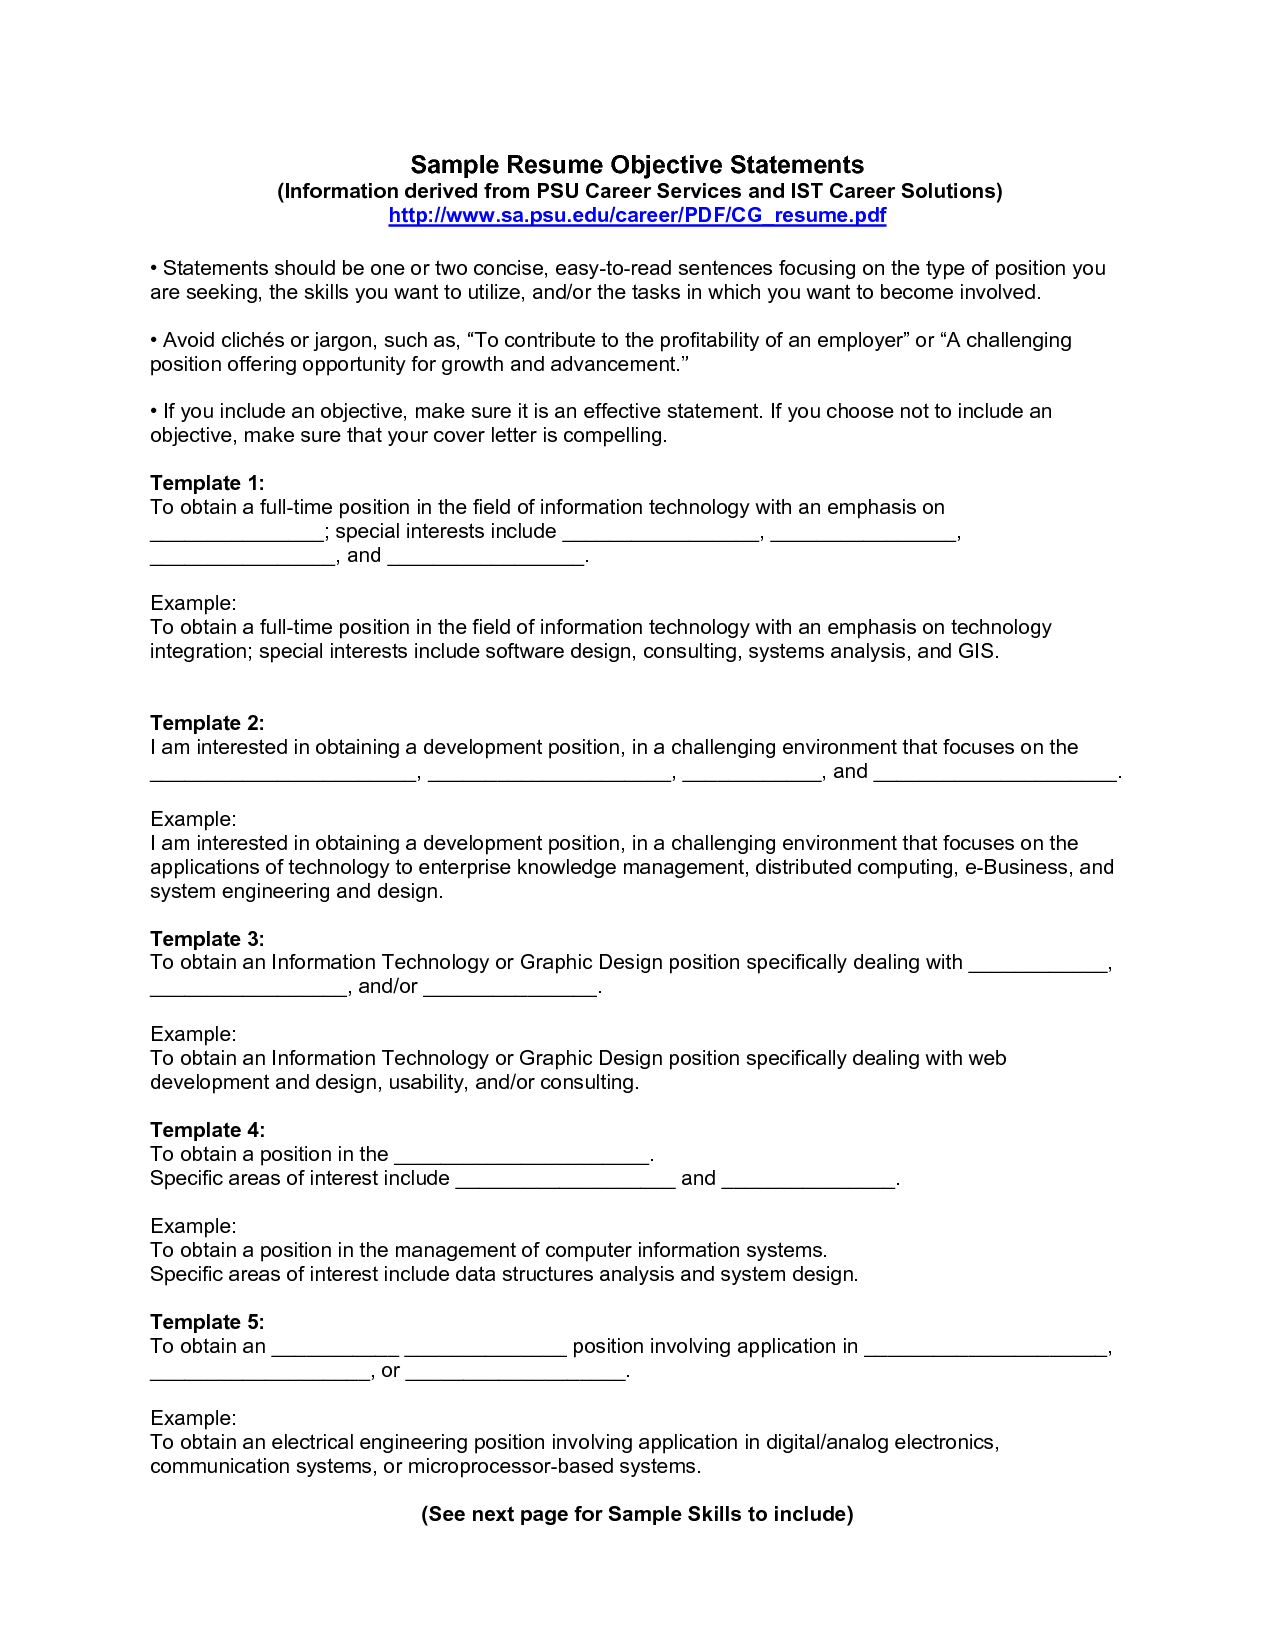 Resume Objective Examples statement and Resume Career Objective statement Examples